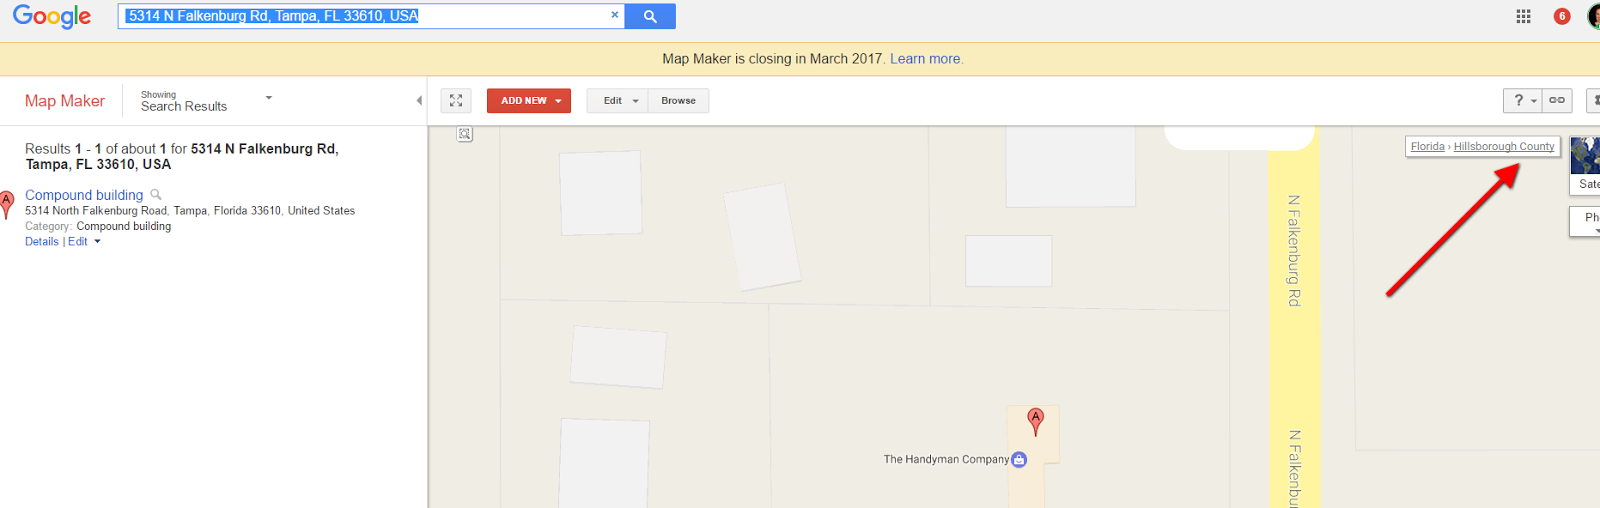 How to Find the City an Address is in - Google Maps-Hilfe